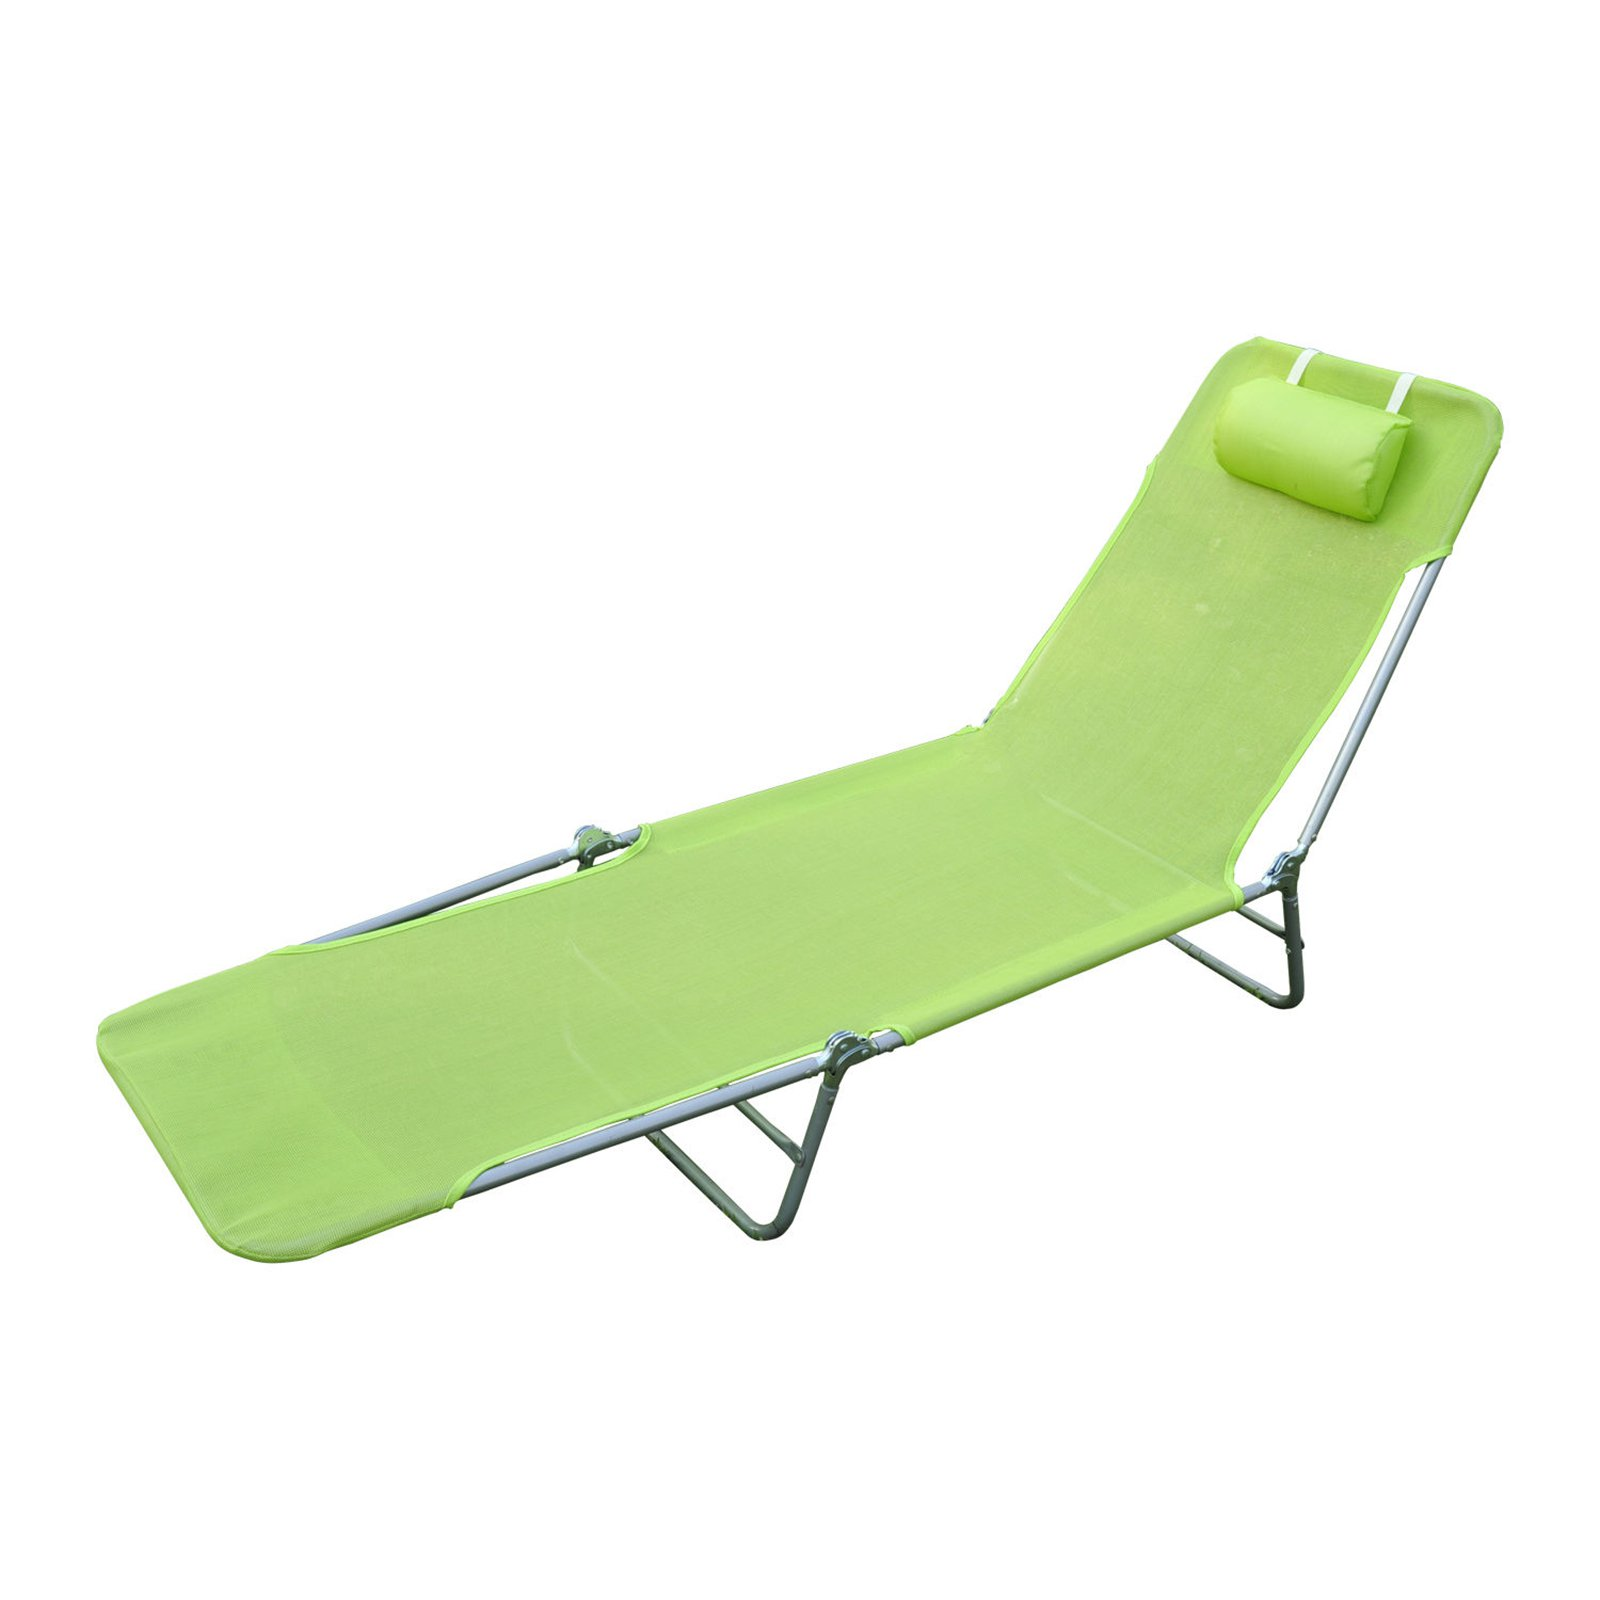 Outsunny Beach Sun Adjustable Reclining Lounge Chair